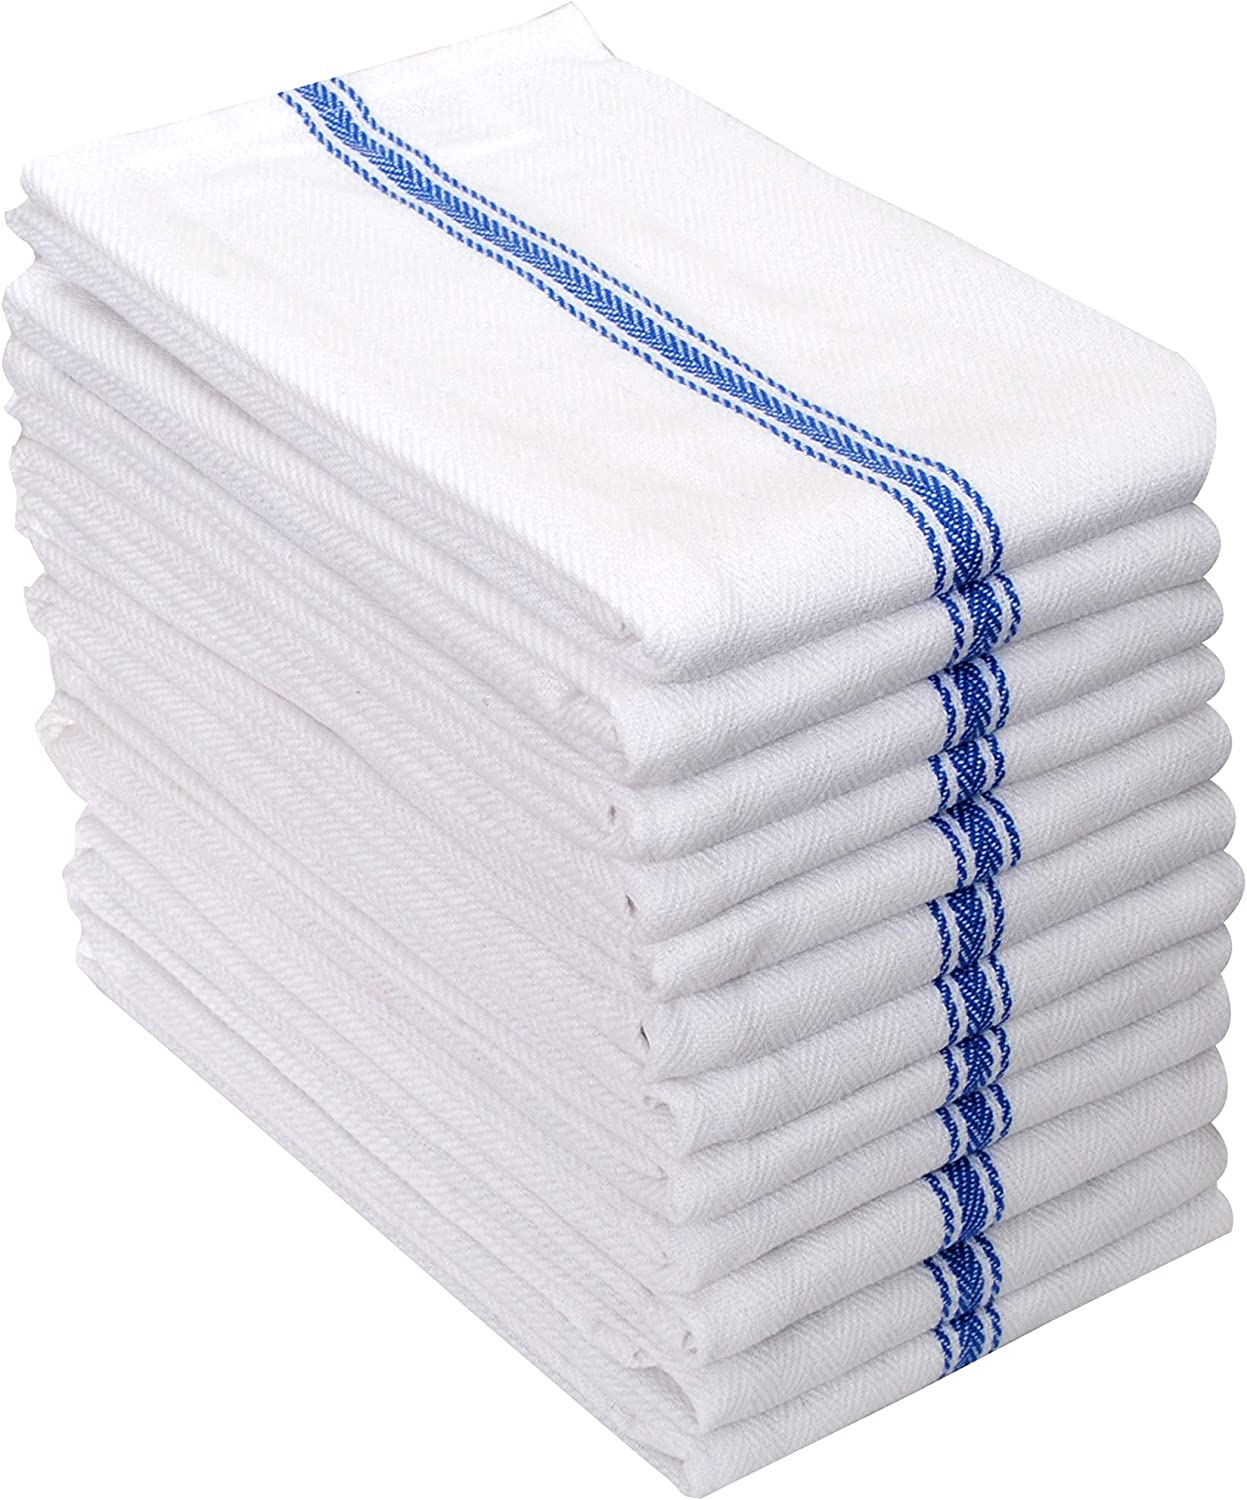 Perfect for Commercial Use and Bar Towels Ultra Soft and Absorbent 28 x 16 Inches Blue 100/% Ring Spun Cotton Dish Towels Set of 12 Amour Infini Herringbone Weave Kitchen Towels